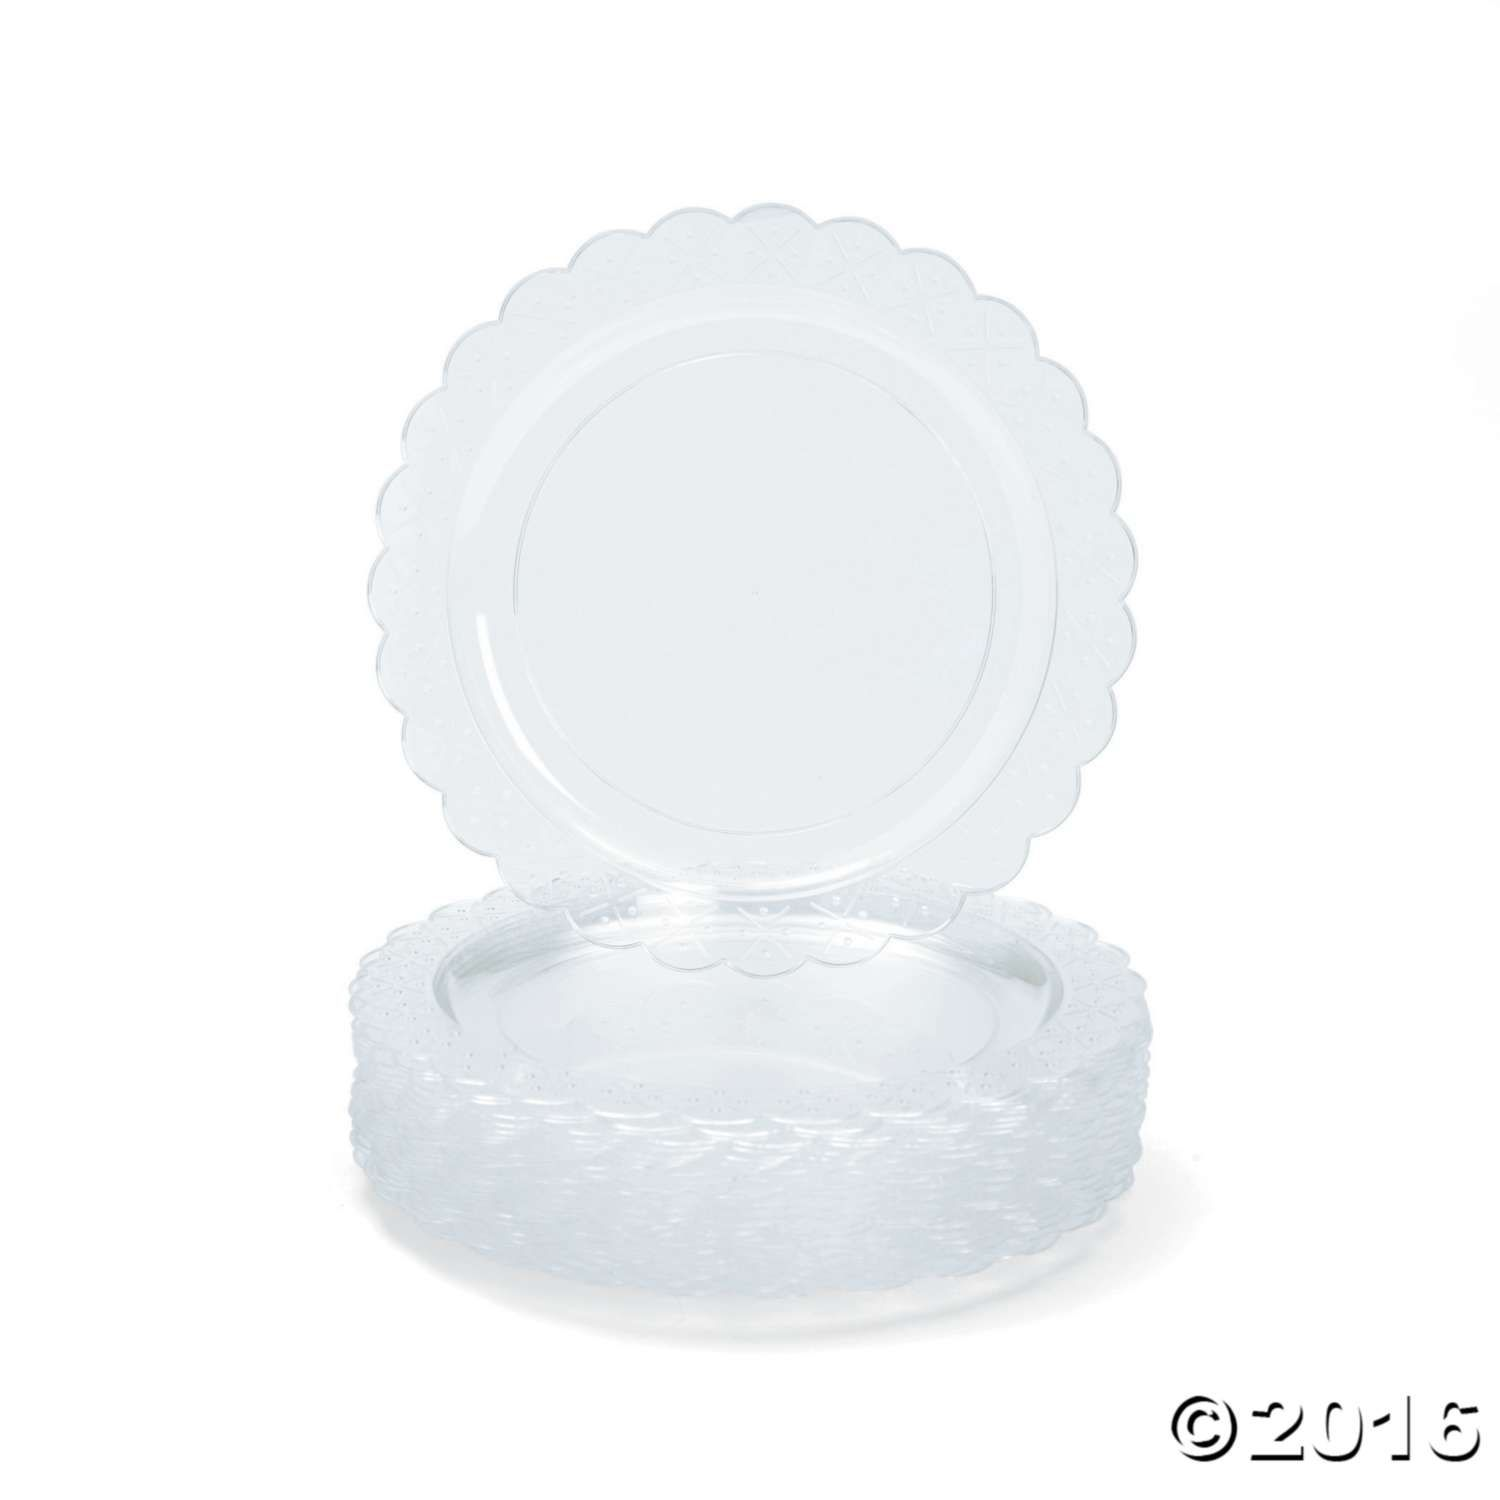 Remember To Order Extra Plates For Your Wedding Reception Anniversary Party Or Next Birthday These 9 Plastic With Scalloped Edges Make